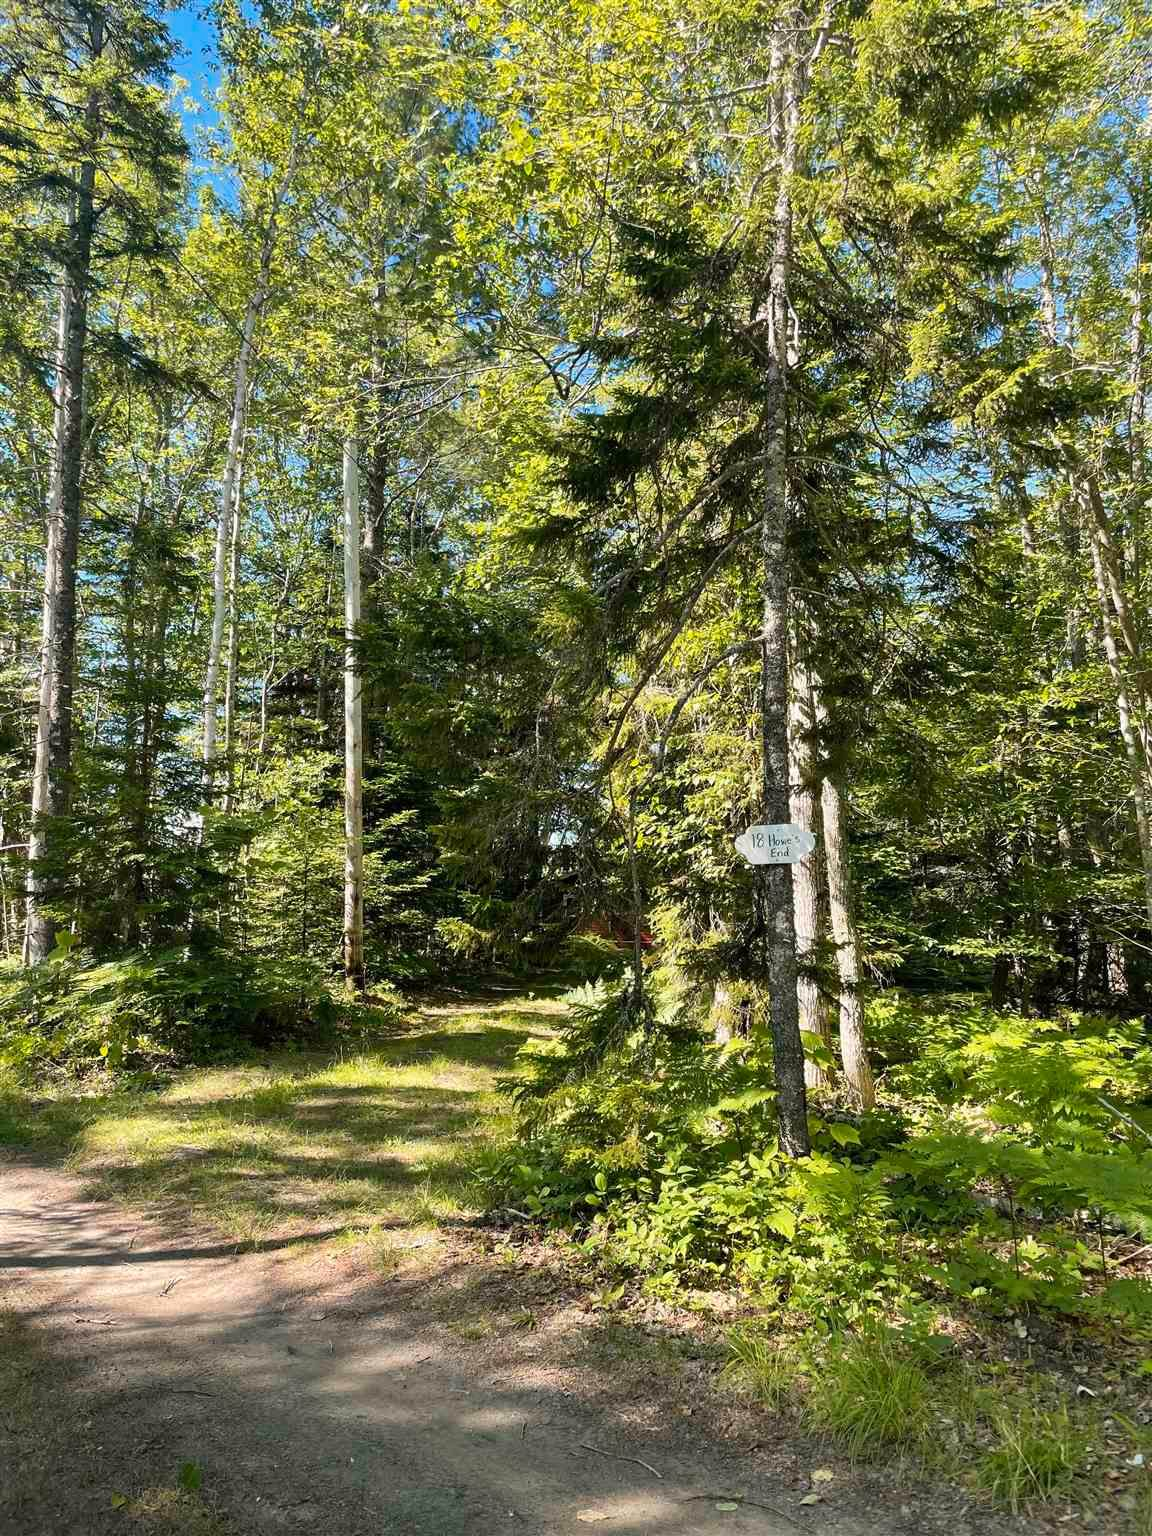 Main Photo: 18 Hows End in Sunken Lake: 404-Kings County Residential for sale (Annapolis Valley)  : MLS®# 202116549